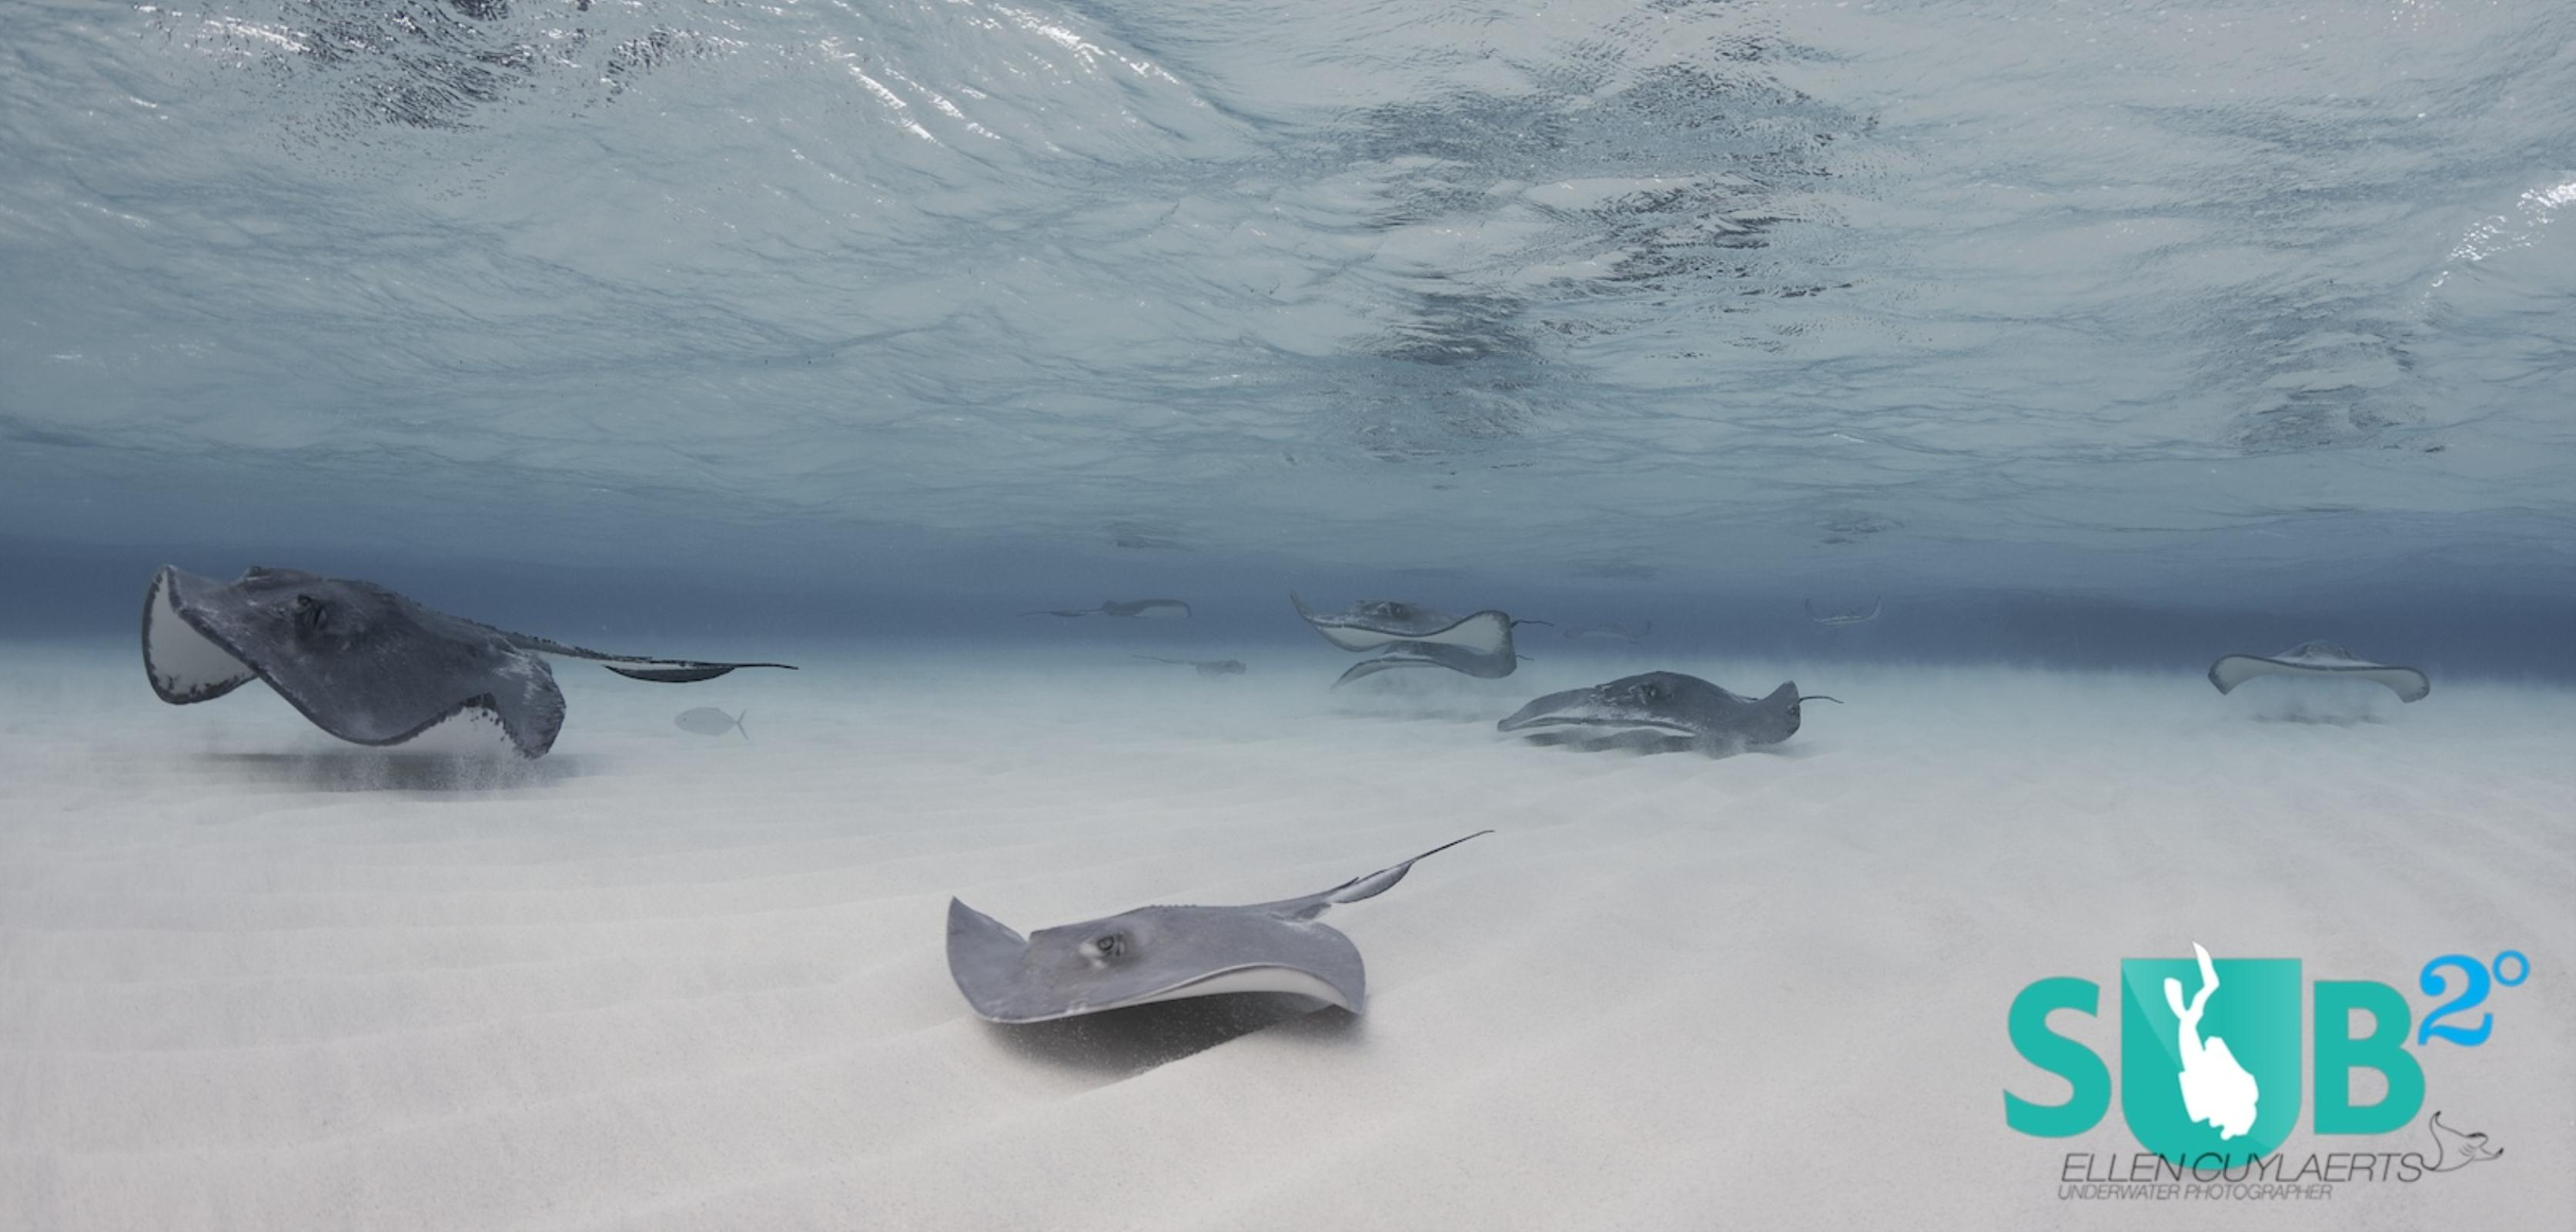 The last years numbers of stingrays declined...